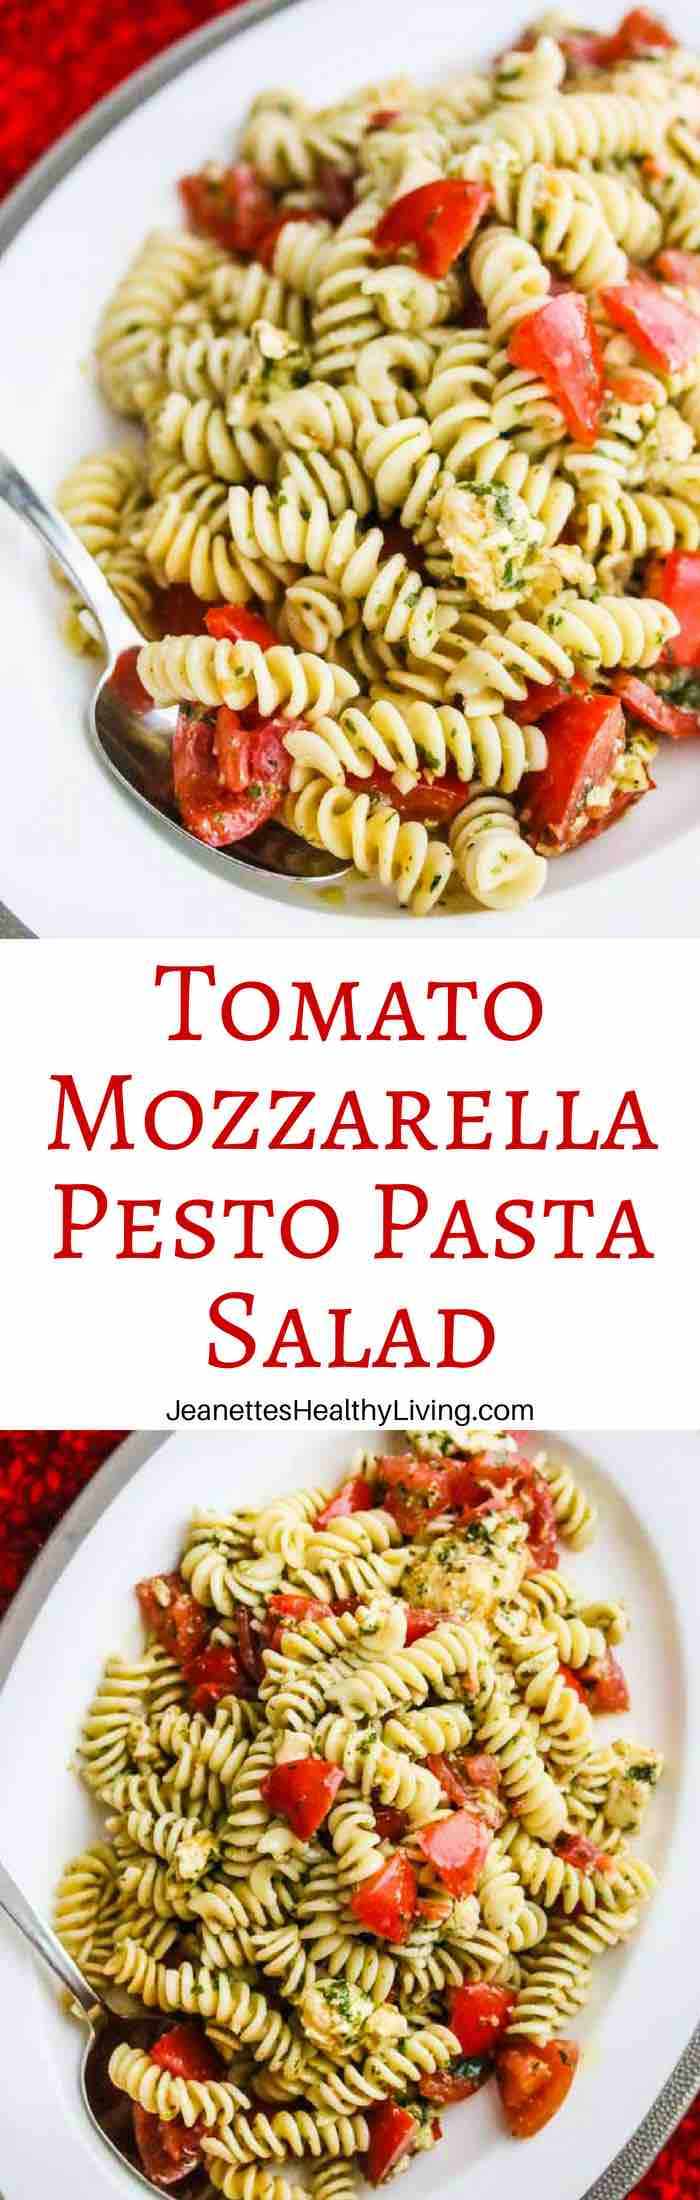 Tomato Mozzarella Pesto Pasta Salad - simple, fresh and healthy pasta salad, perfect for barbecues an picnics